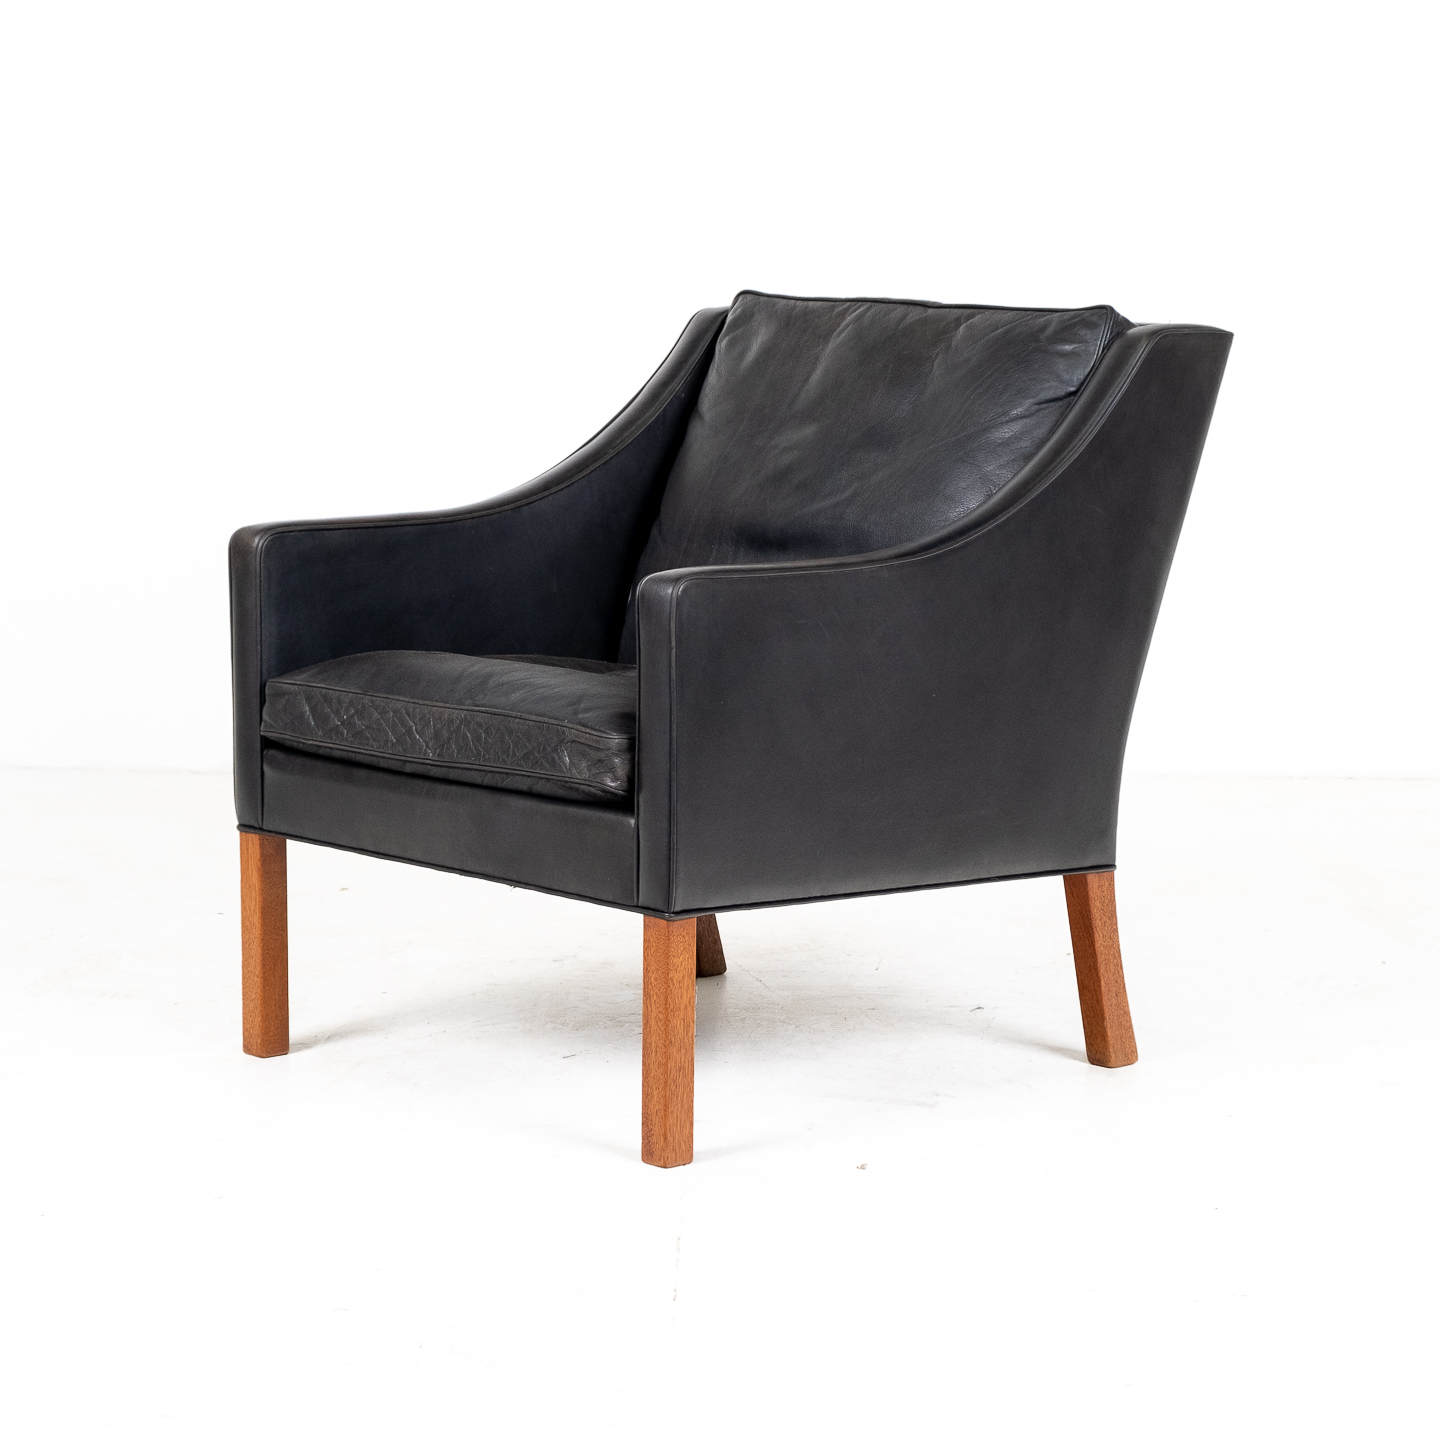 Model 2207 Armchair With Footstool Designed By Borge Mogensen For Fredericia Mobelfabrik In Black Leather, 1960s, Denmark 0000005